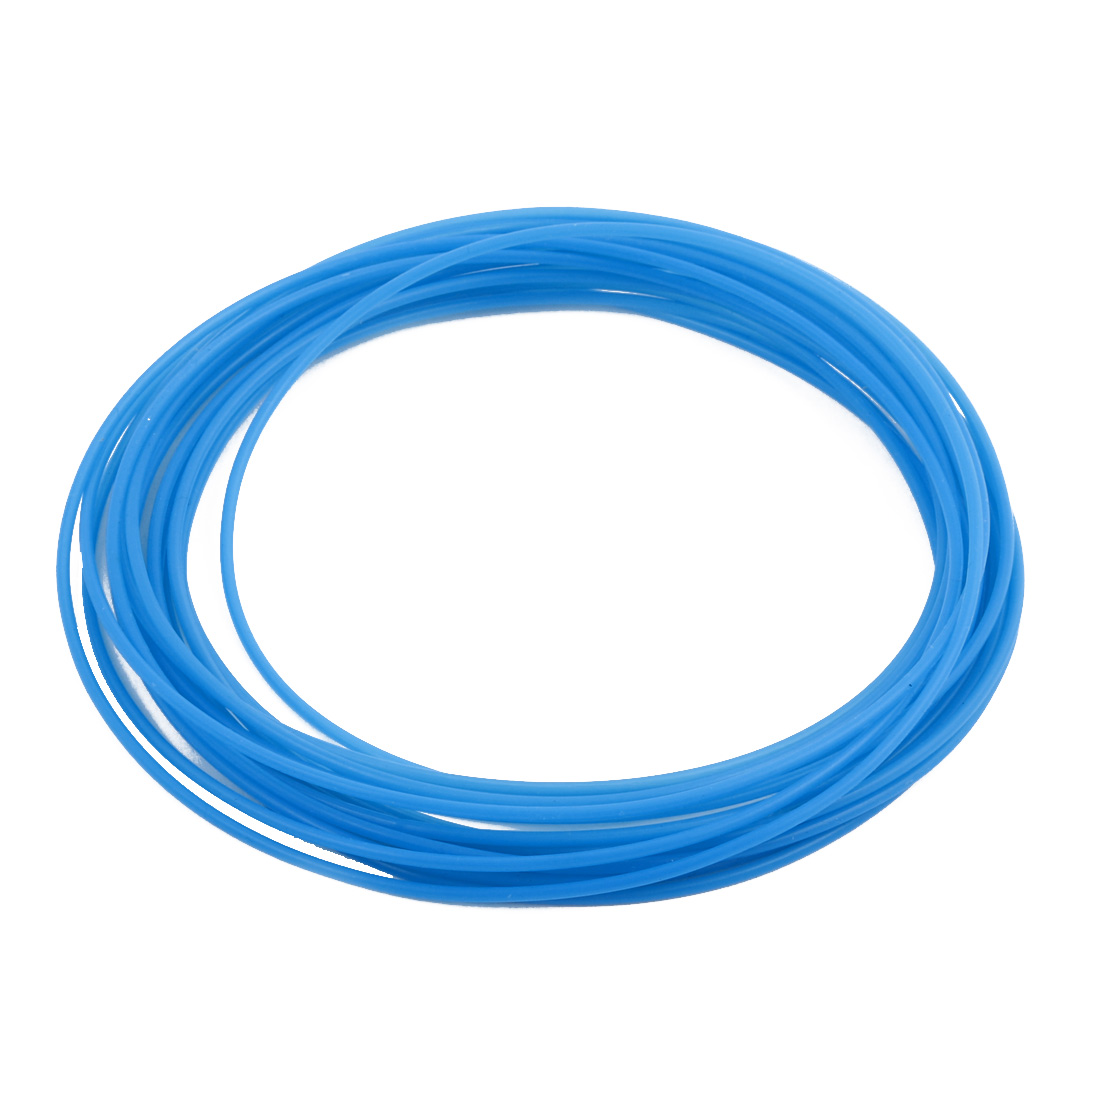 1.34mmx1.64mm PTFE Resistant High Temperature Blue Tubing 5 Meters 16.4Ft